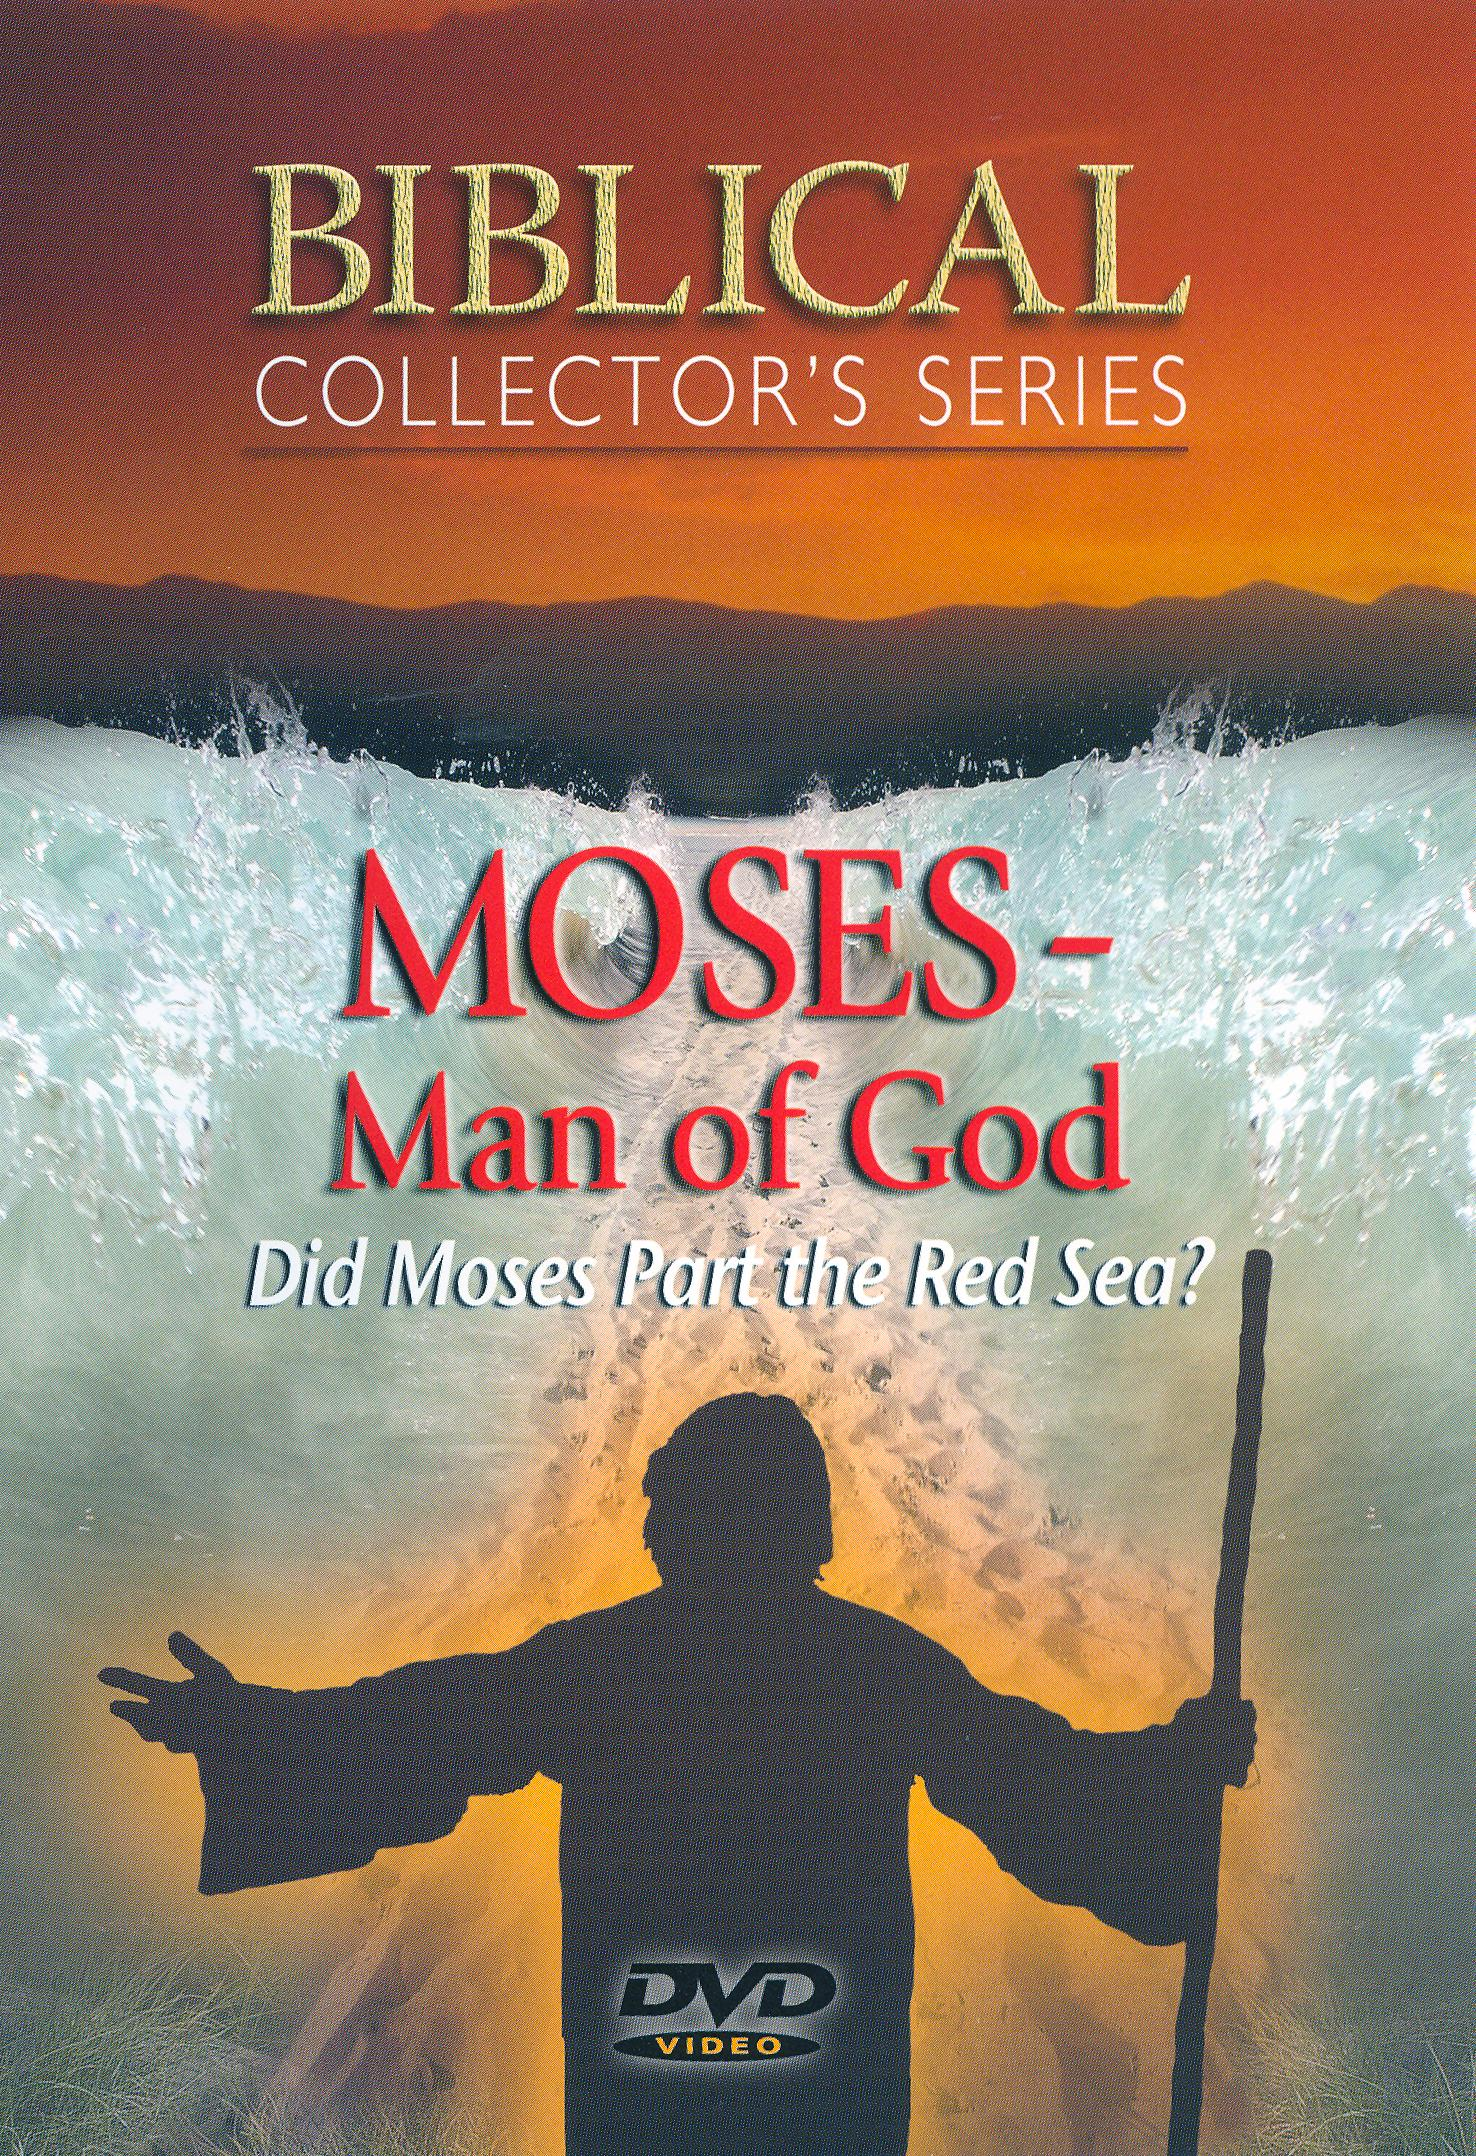 Biblical Collector's Series: Moses - Man of God